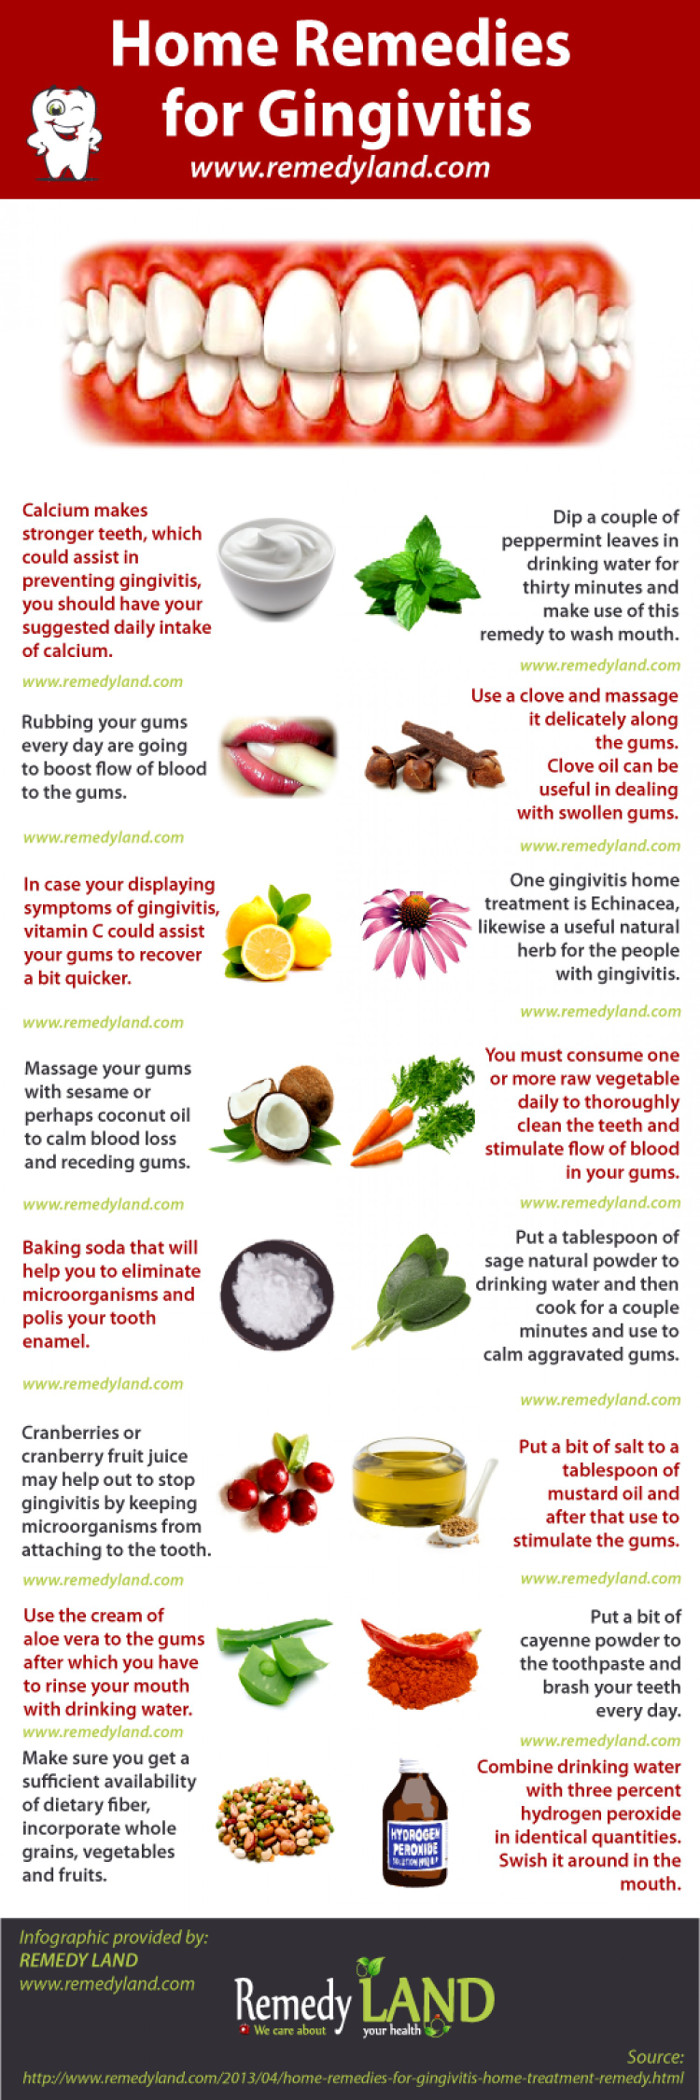 Home Remedies For Bleeding Gums HRFnd - Home remedies stop bleeding